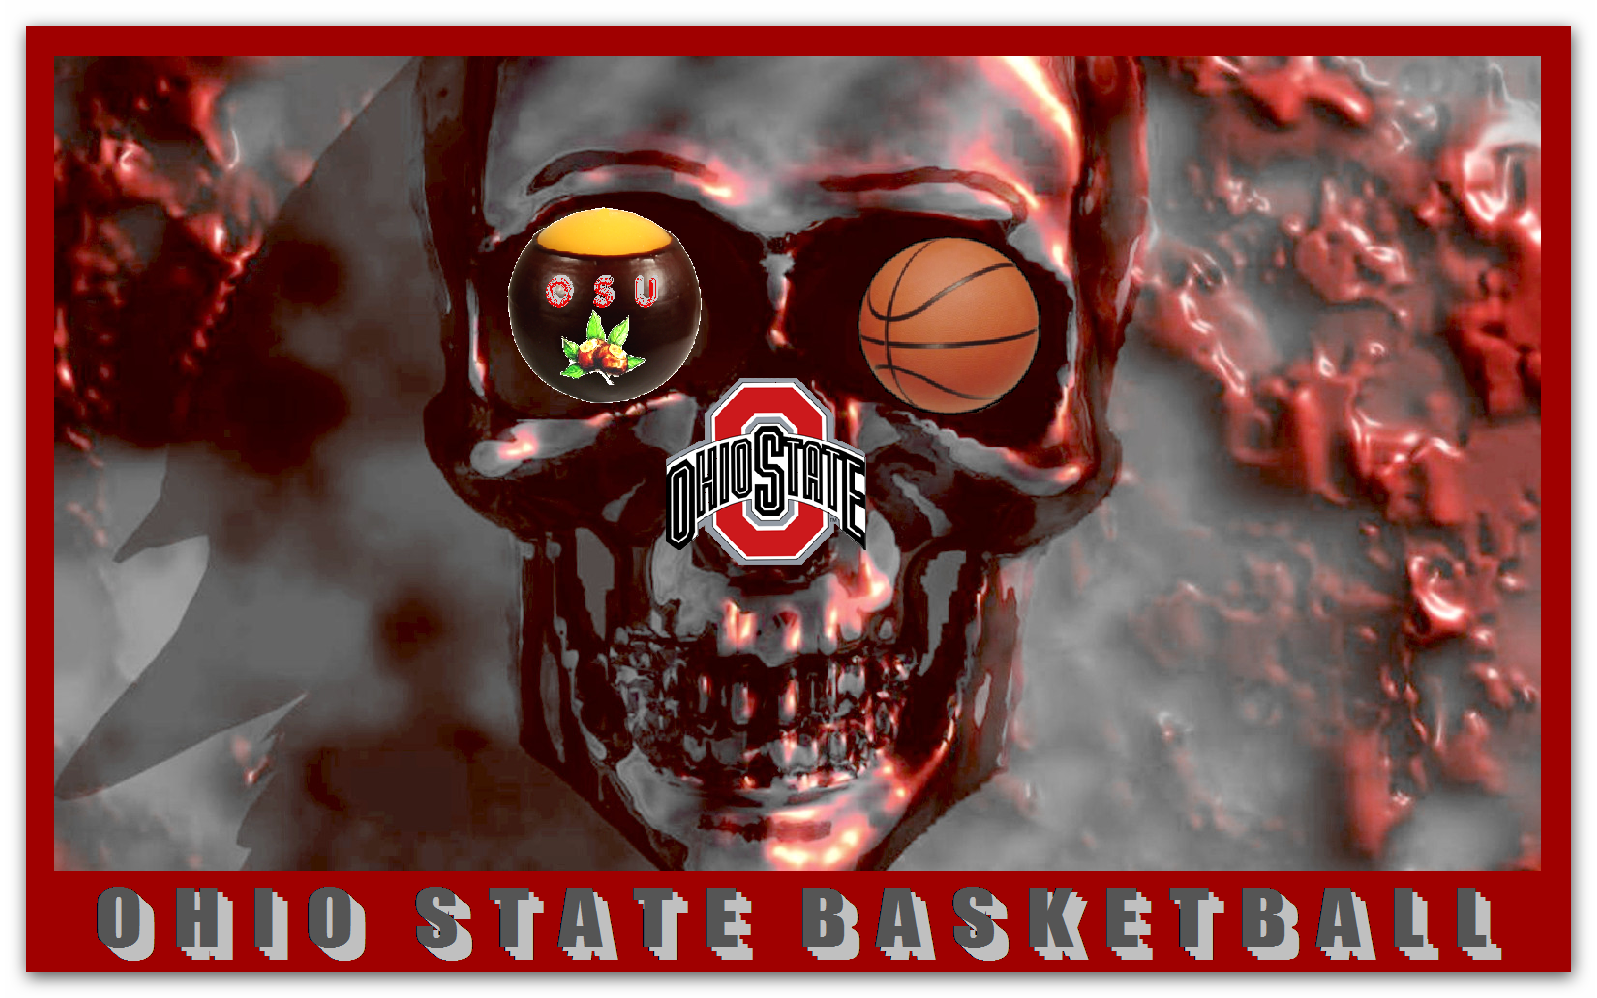 OHIO STATE BASKETBALL SKULLER